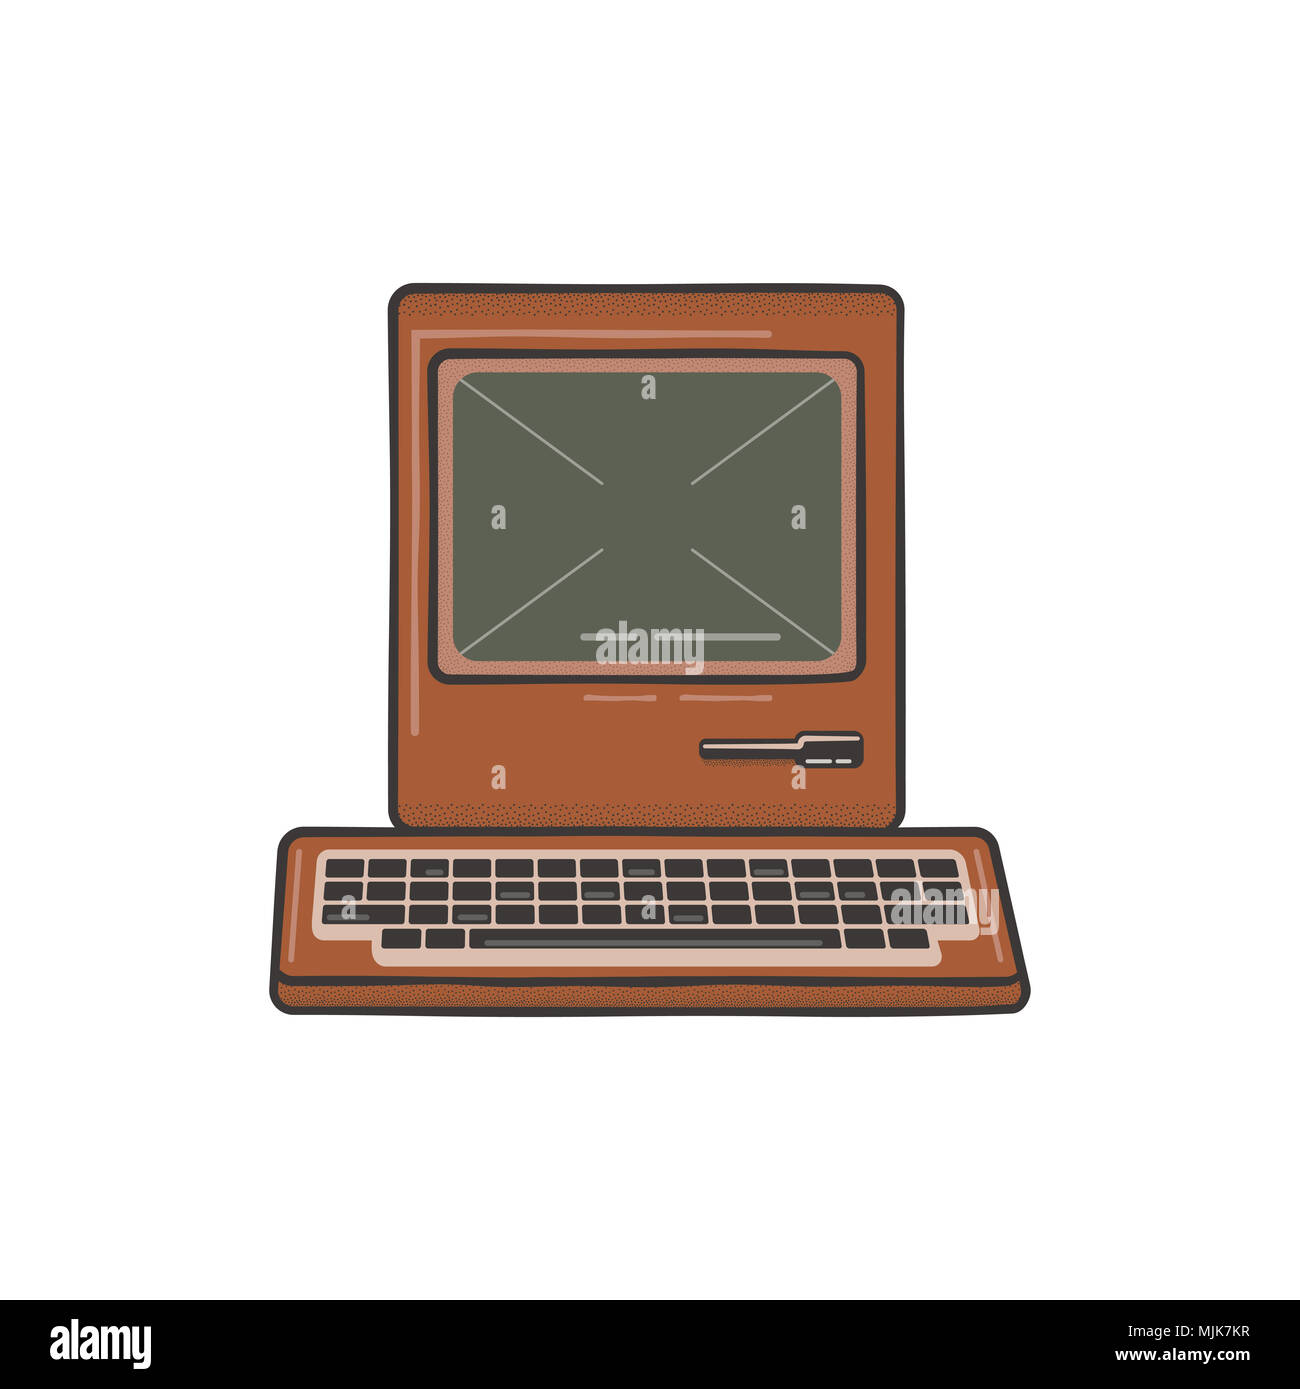 Vintage Hand Drawn Personal Computer With Keyboard. Old classic pc with sign - Old School Rules. Retro technology icon. Stock Illustration, tee design, t shirt isolated on white - Stock Image